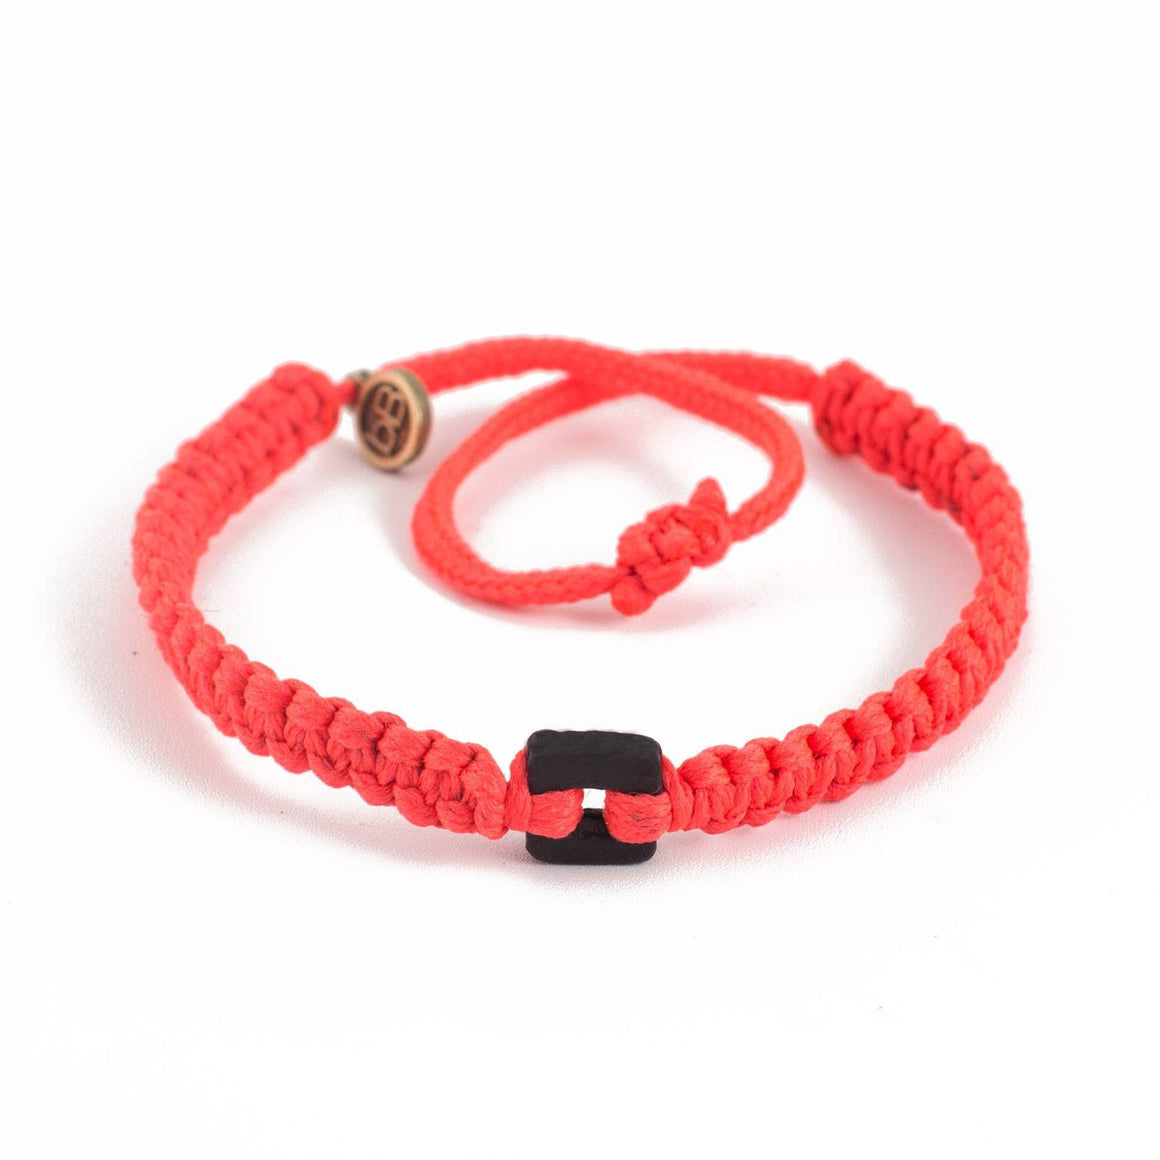 Black Raymi Deep Watermelon bracelets that fight poverty cover